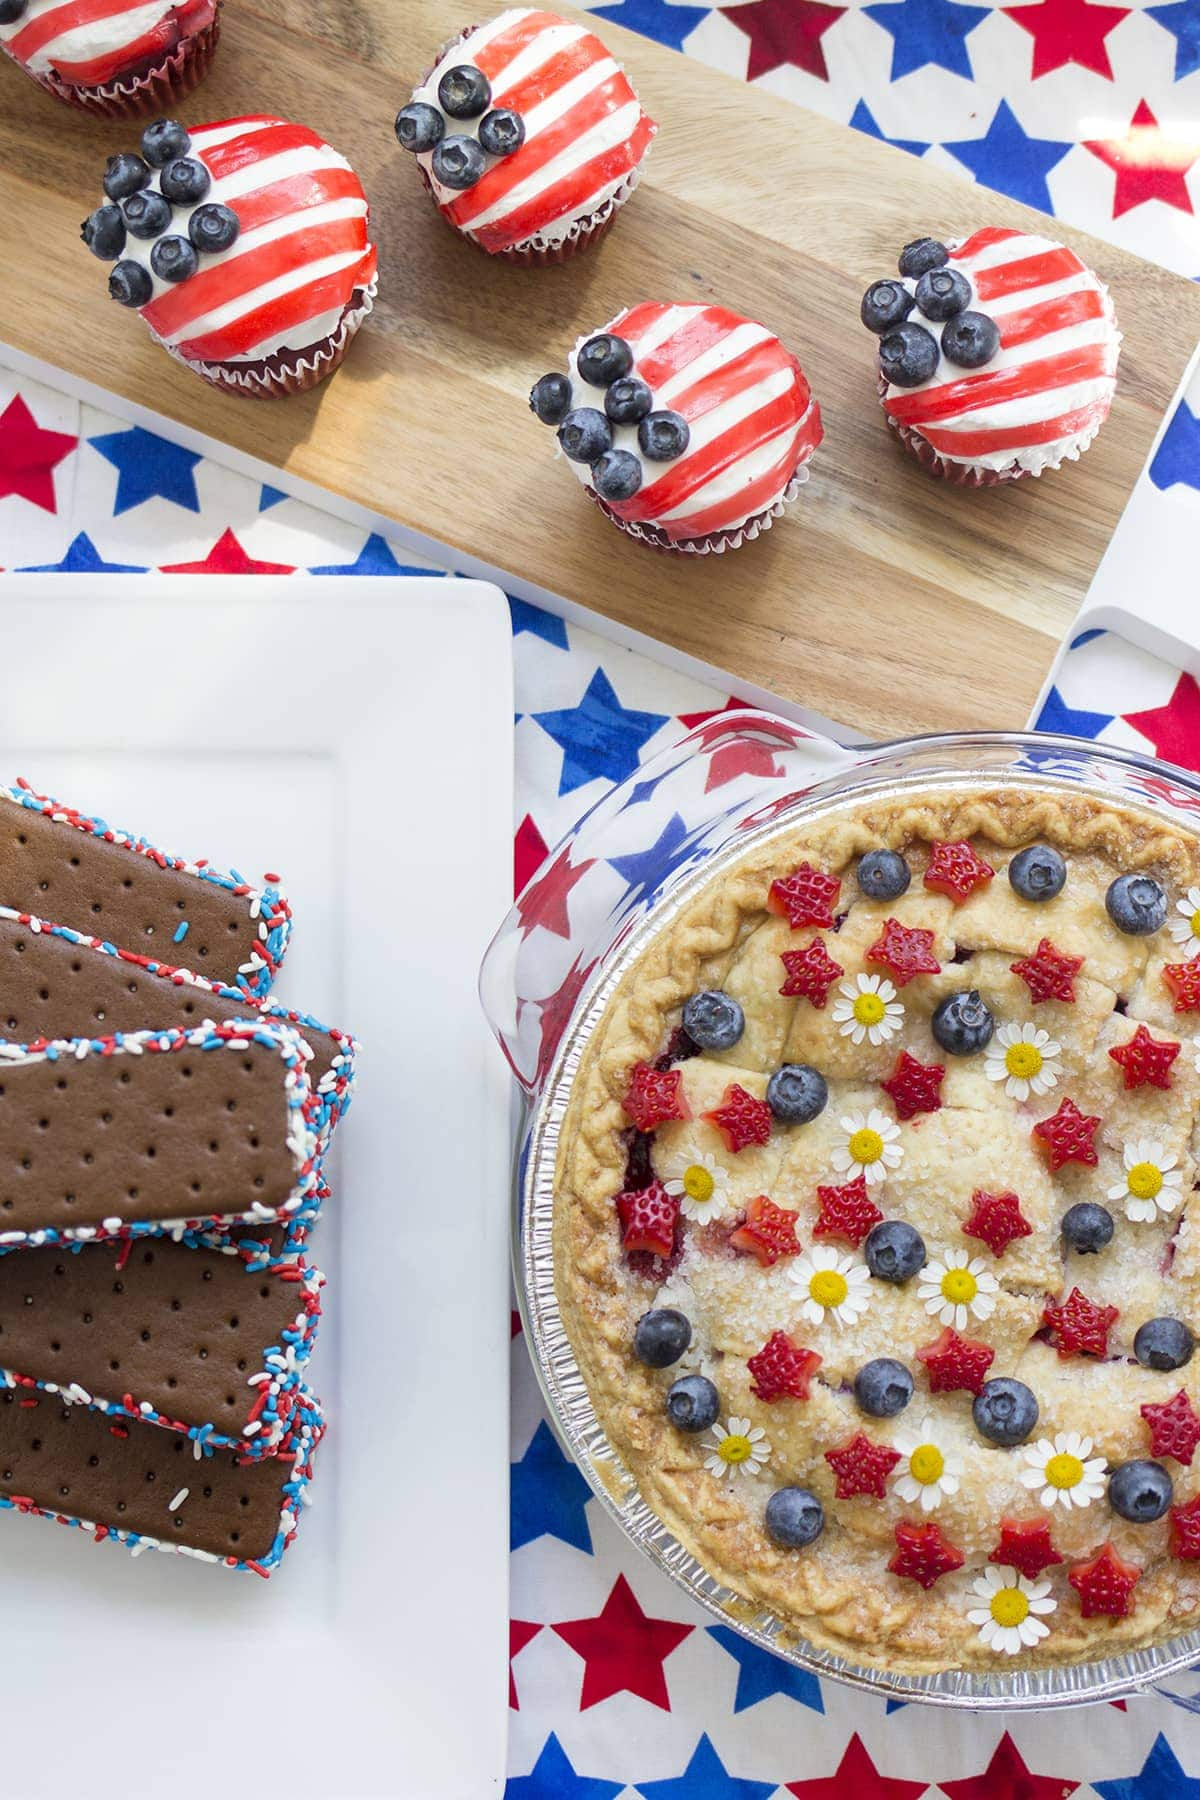 Three 4th of July Grocery Store Hacks to Try